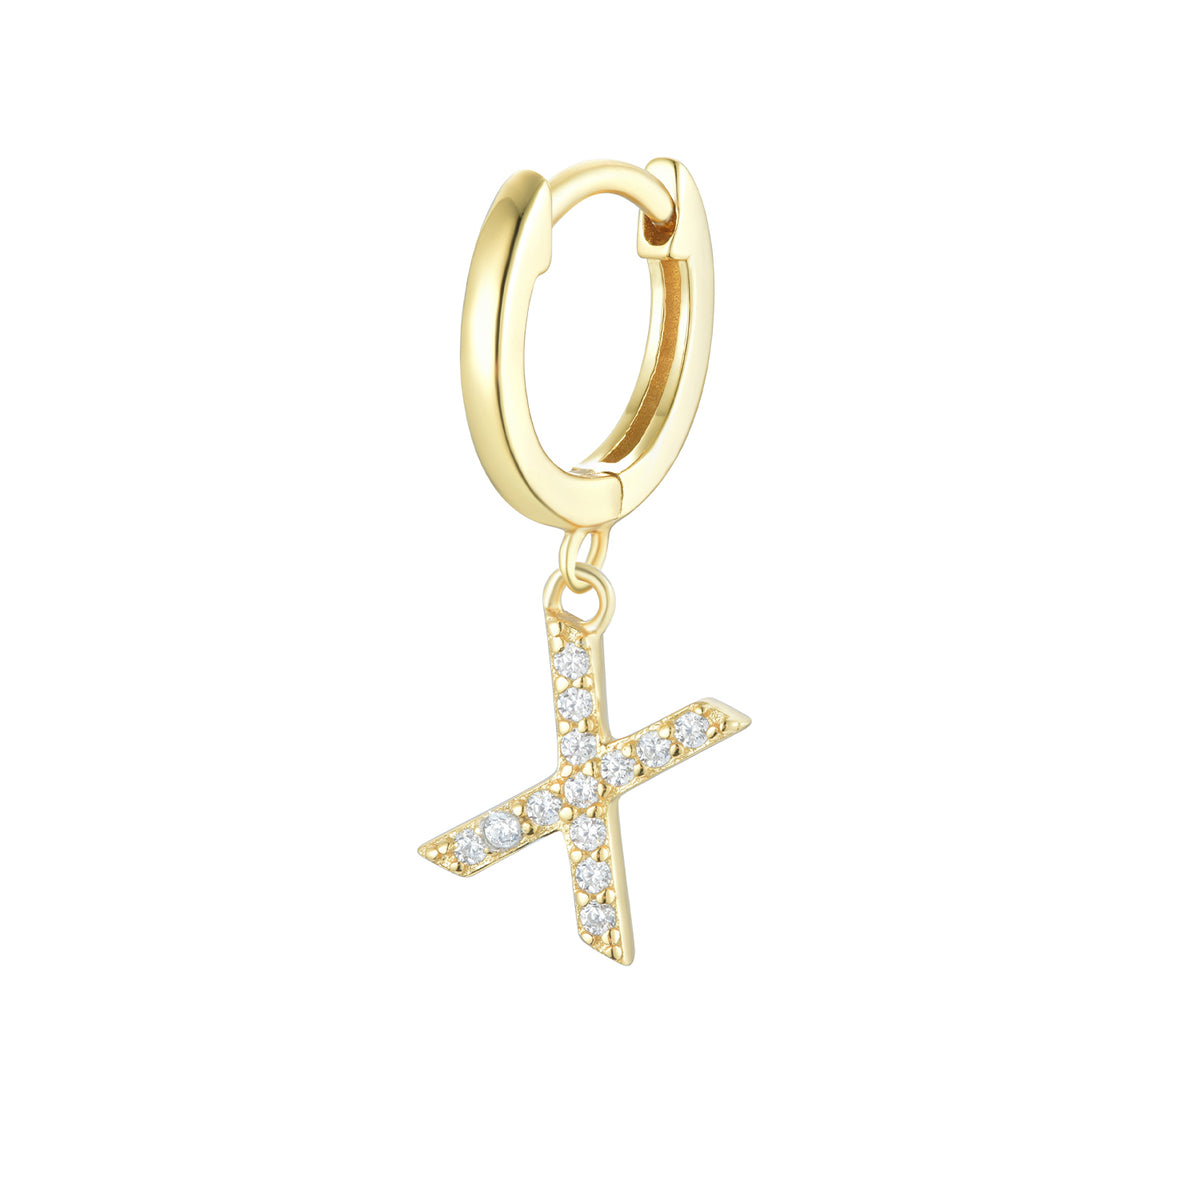 Magna | X Letter Single Earring | White CZ | 18K Gold Plated 925 Silver